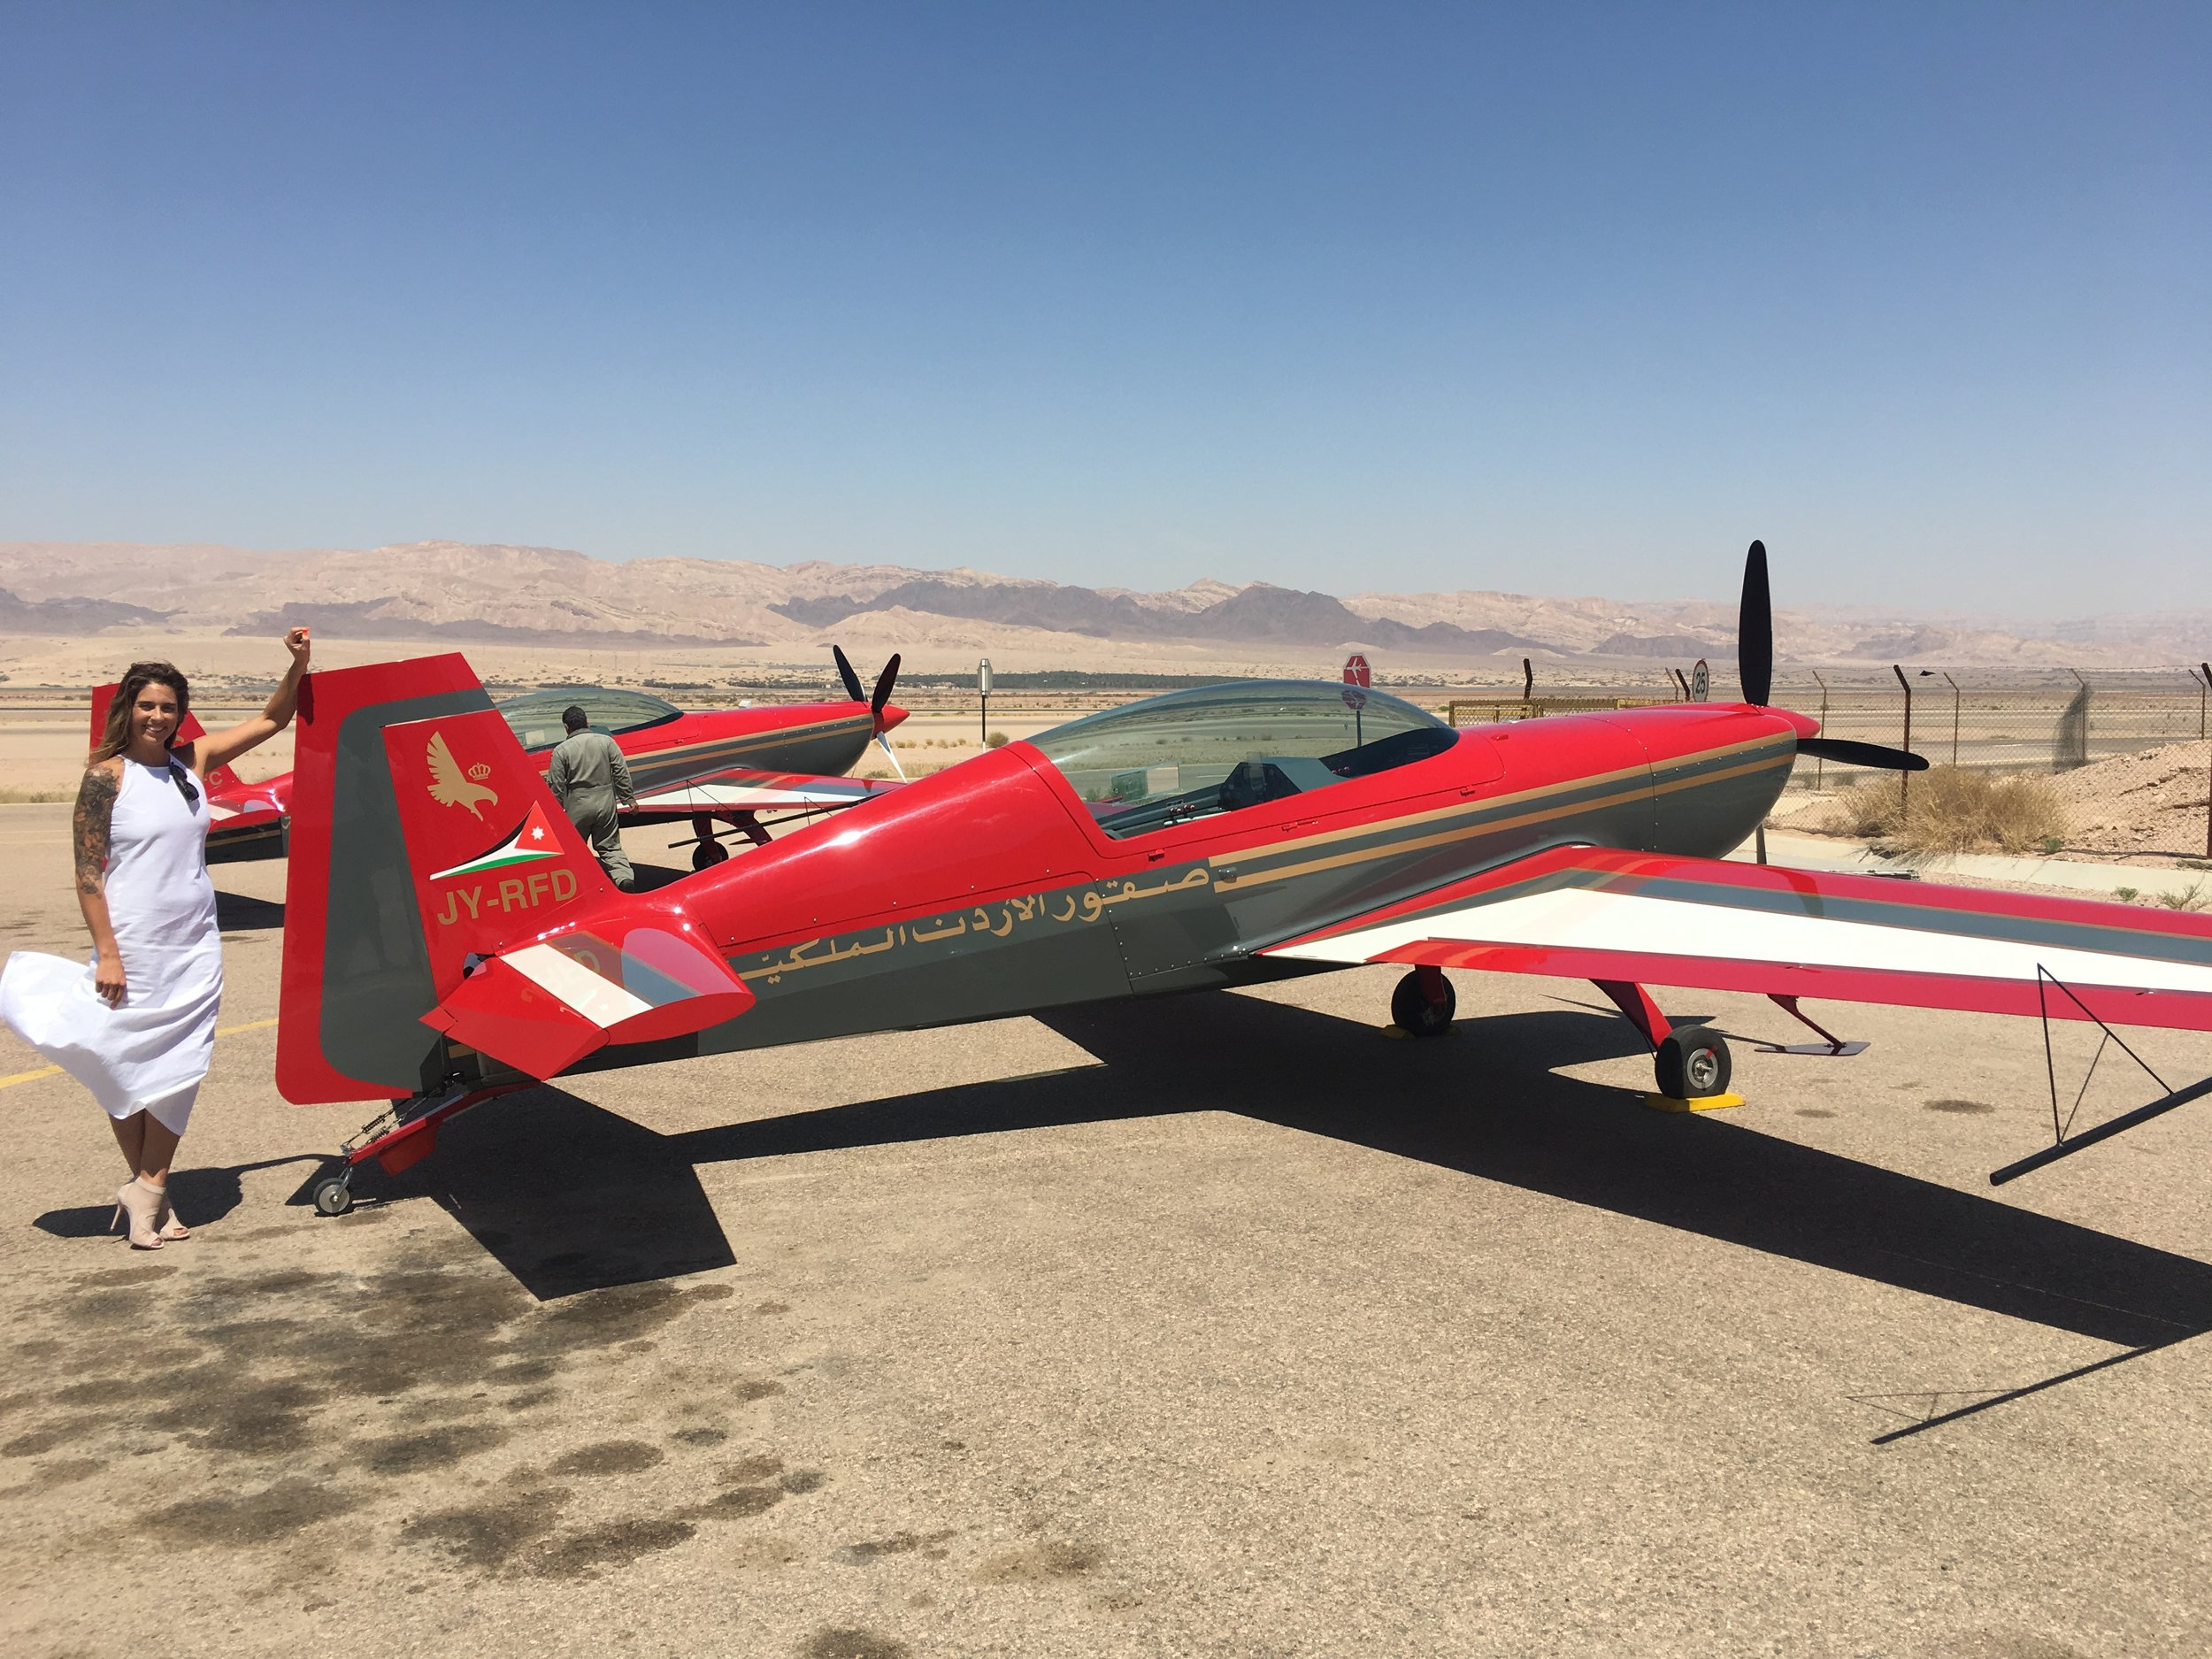 Moxham being treated to acrobatics over Aquaba in the Xtra 300L by the Royal Jordanian Falcons, Jordan